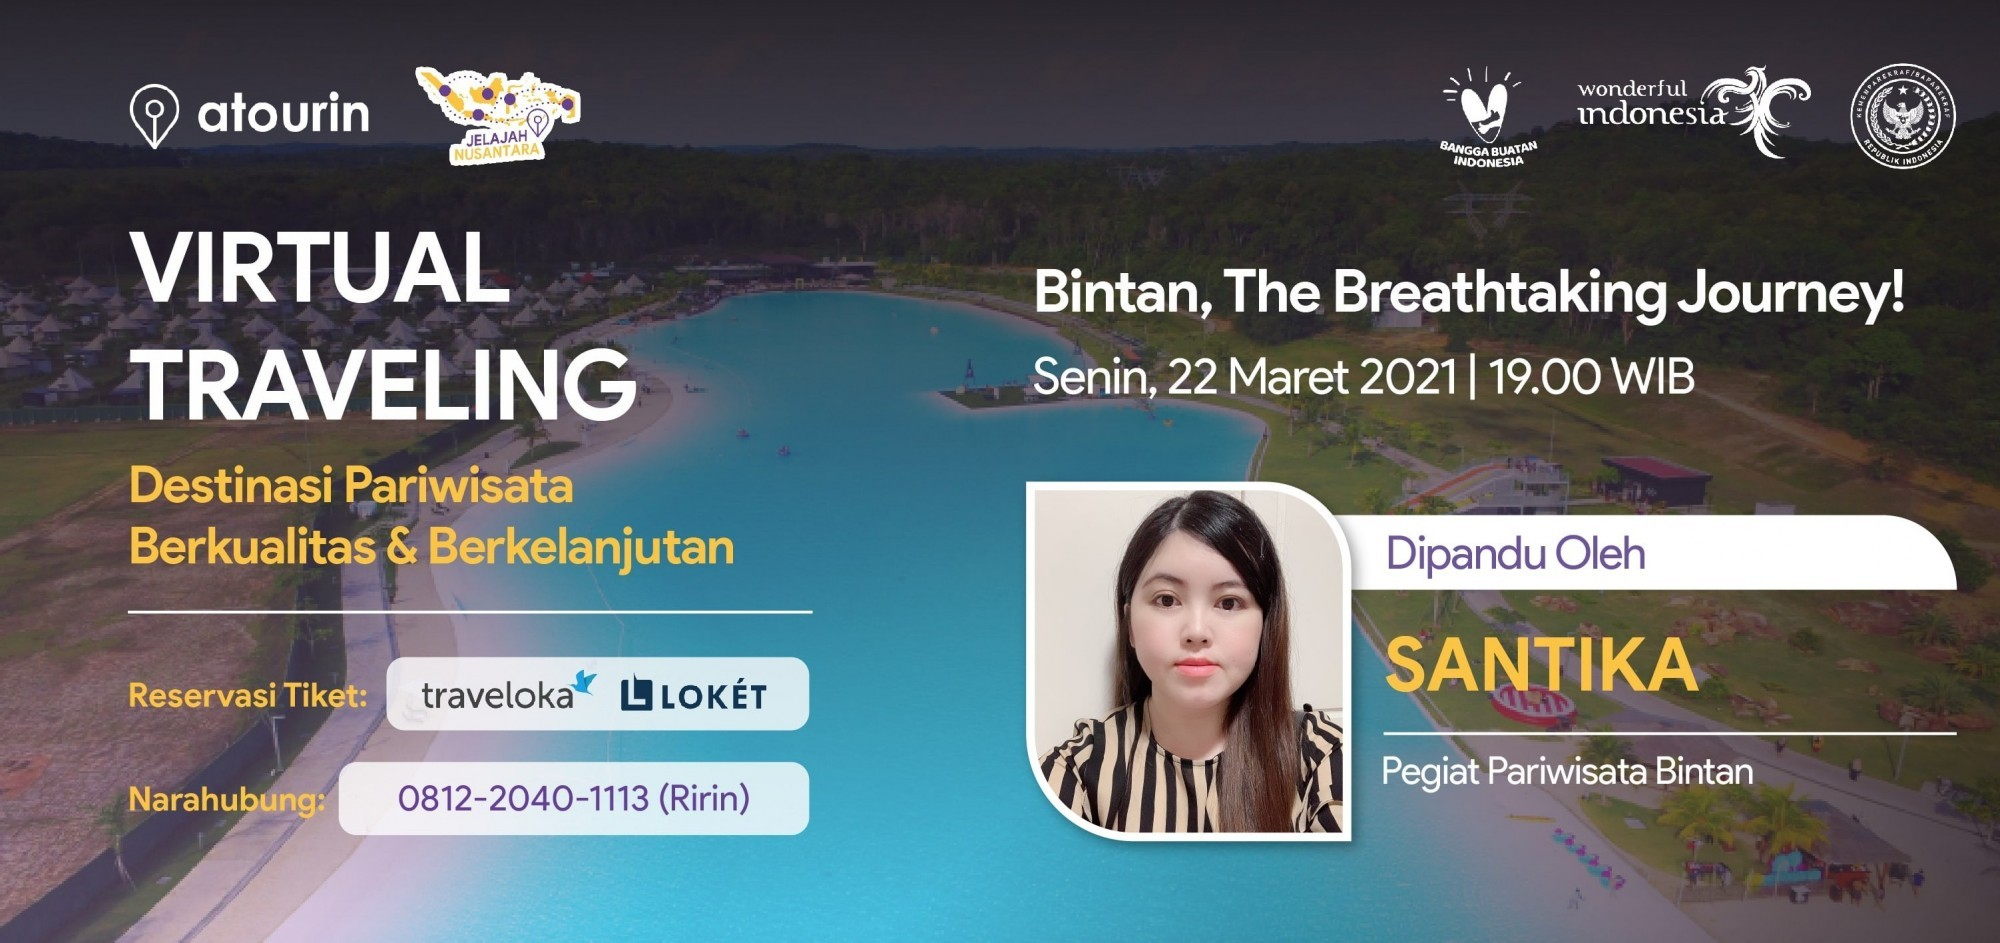 Bintan, The Breathtaking Journey!